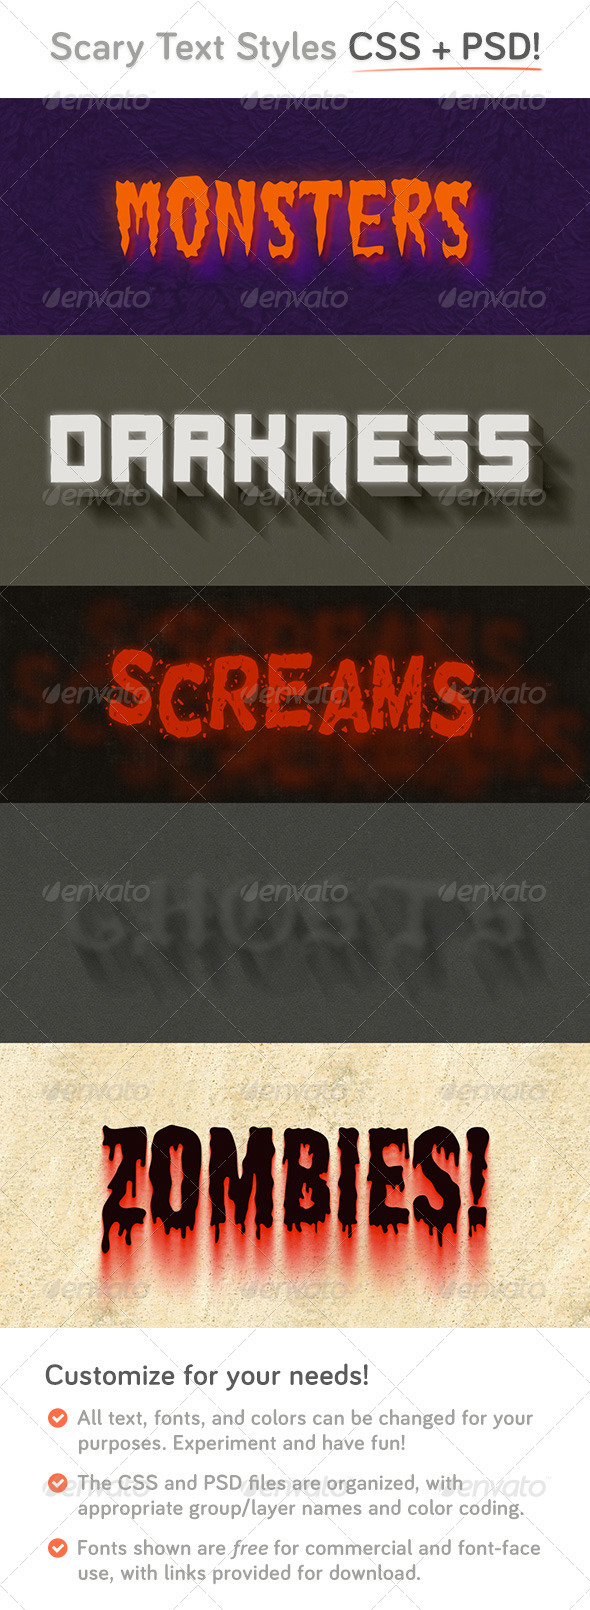 GraphicRiver Scary CSS Type Styles &PSD 4014292